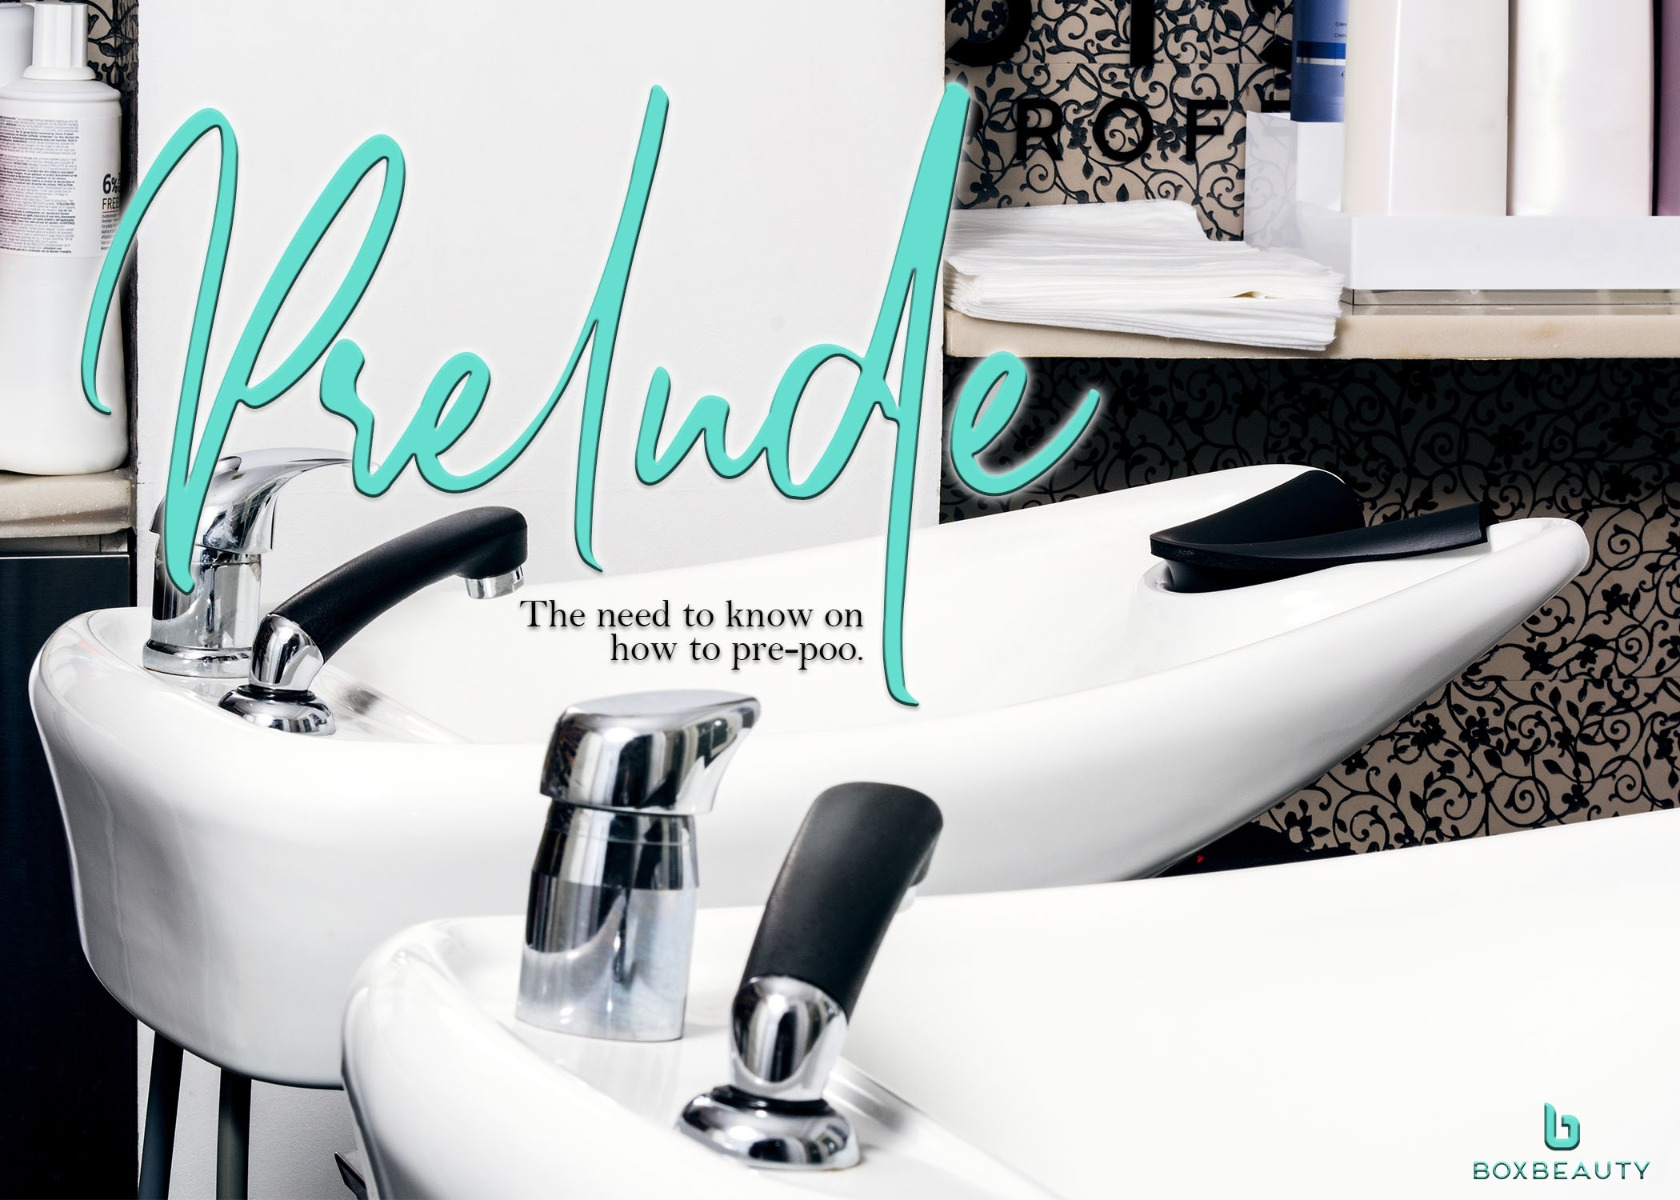 Prelude: The Need to Know on How to Pre-poo